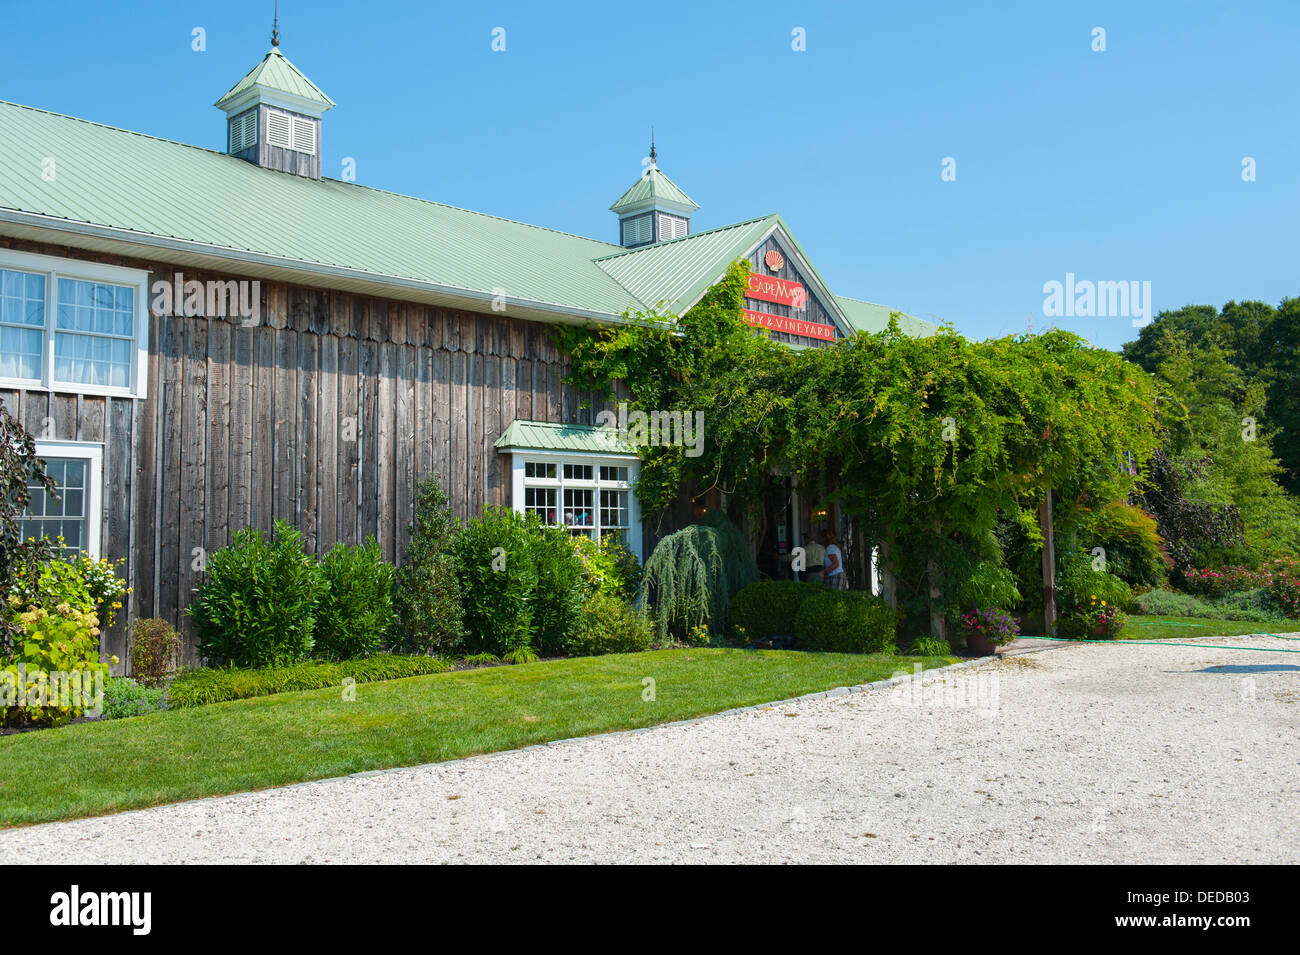 usa-new-jersey-nj-cape-may-winery-and-vi